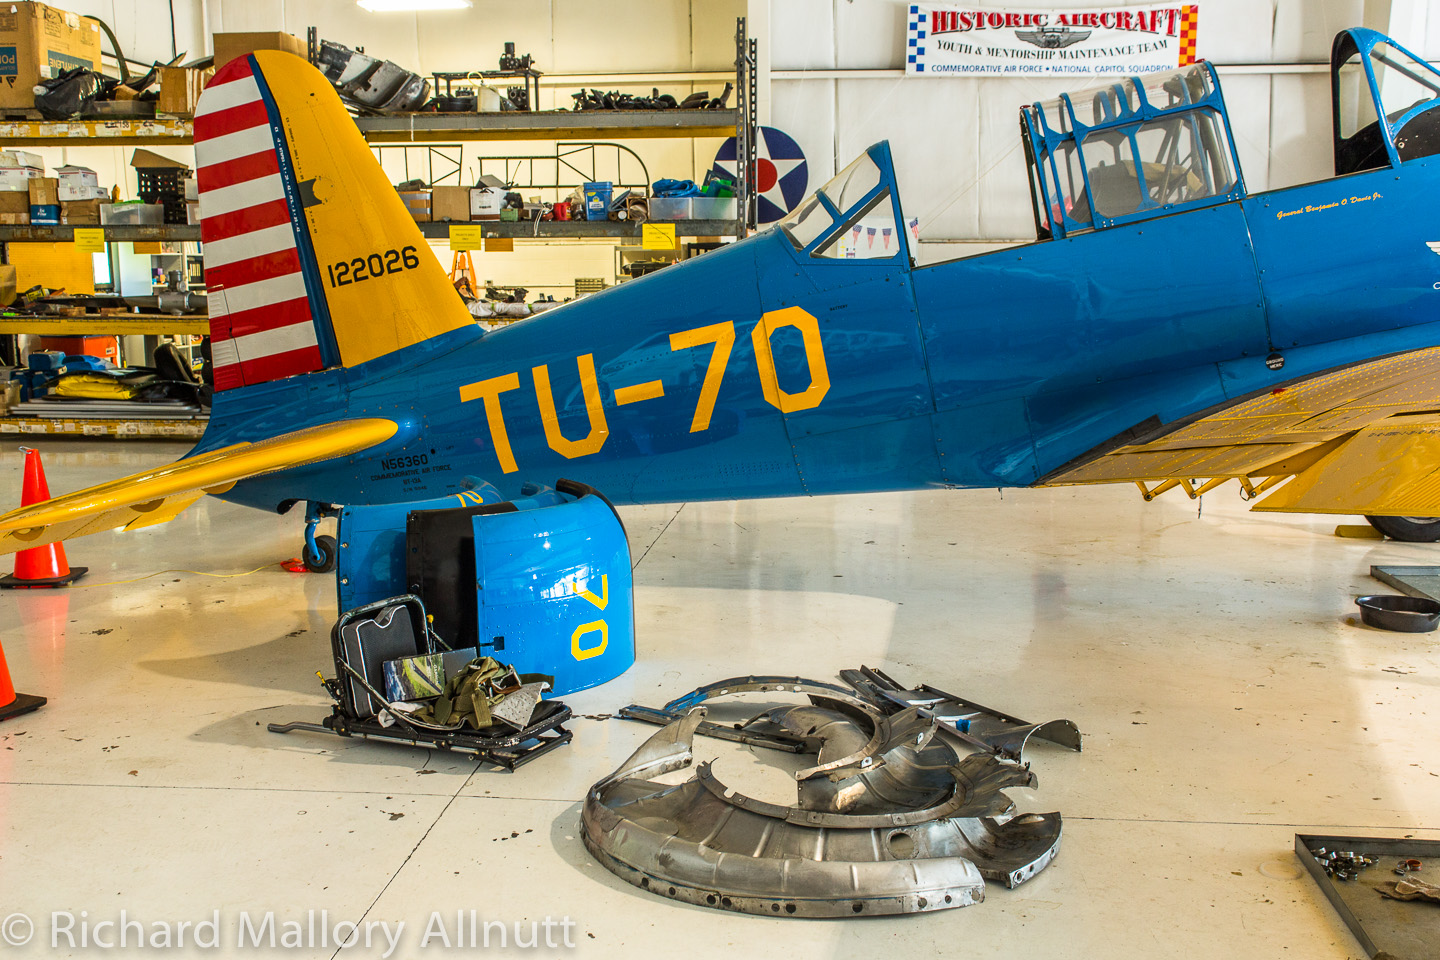 The BT-13's engine cowling and dishpan awaiting the return of the overhauled engine from Covington.  (photo by Richard Mallory Allnutt)